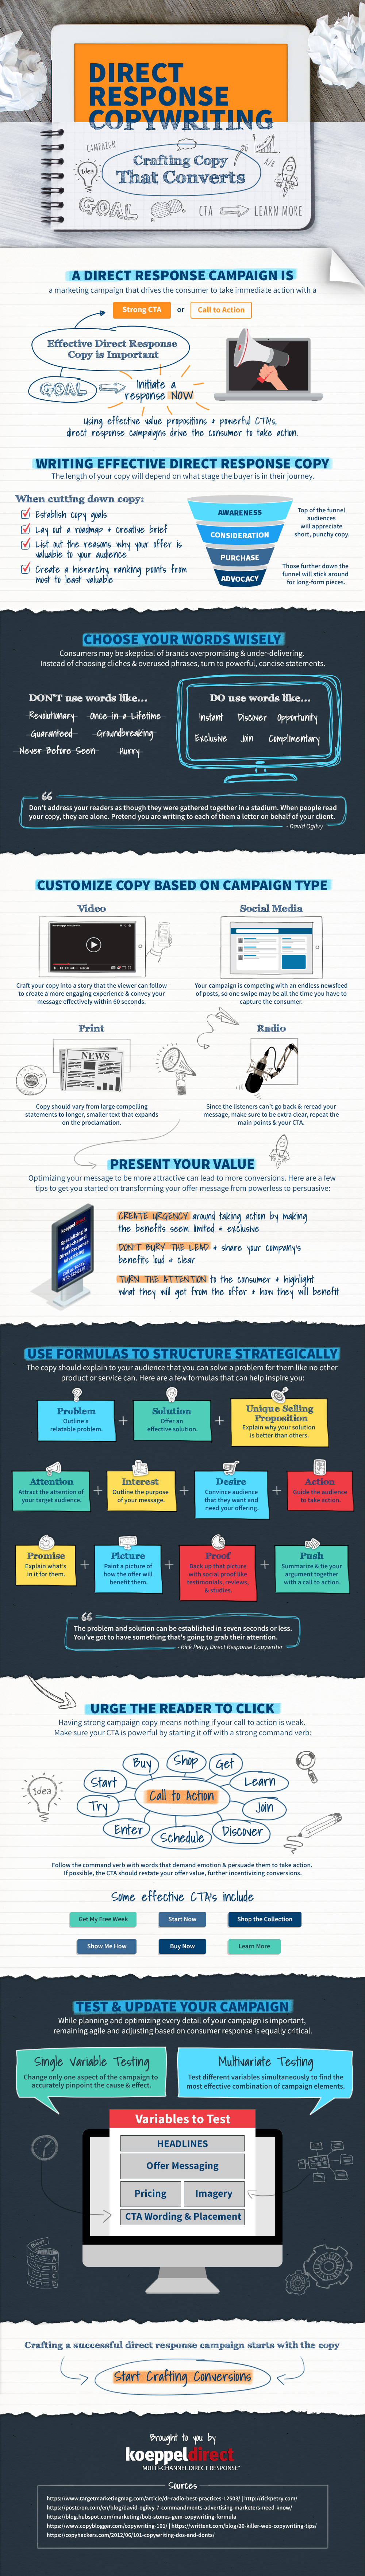 Infographic: Direct Response Copy That Converts